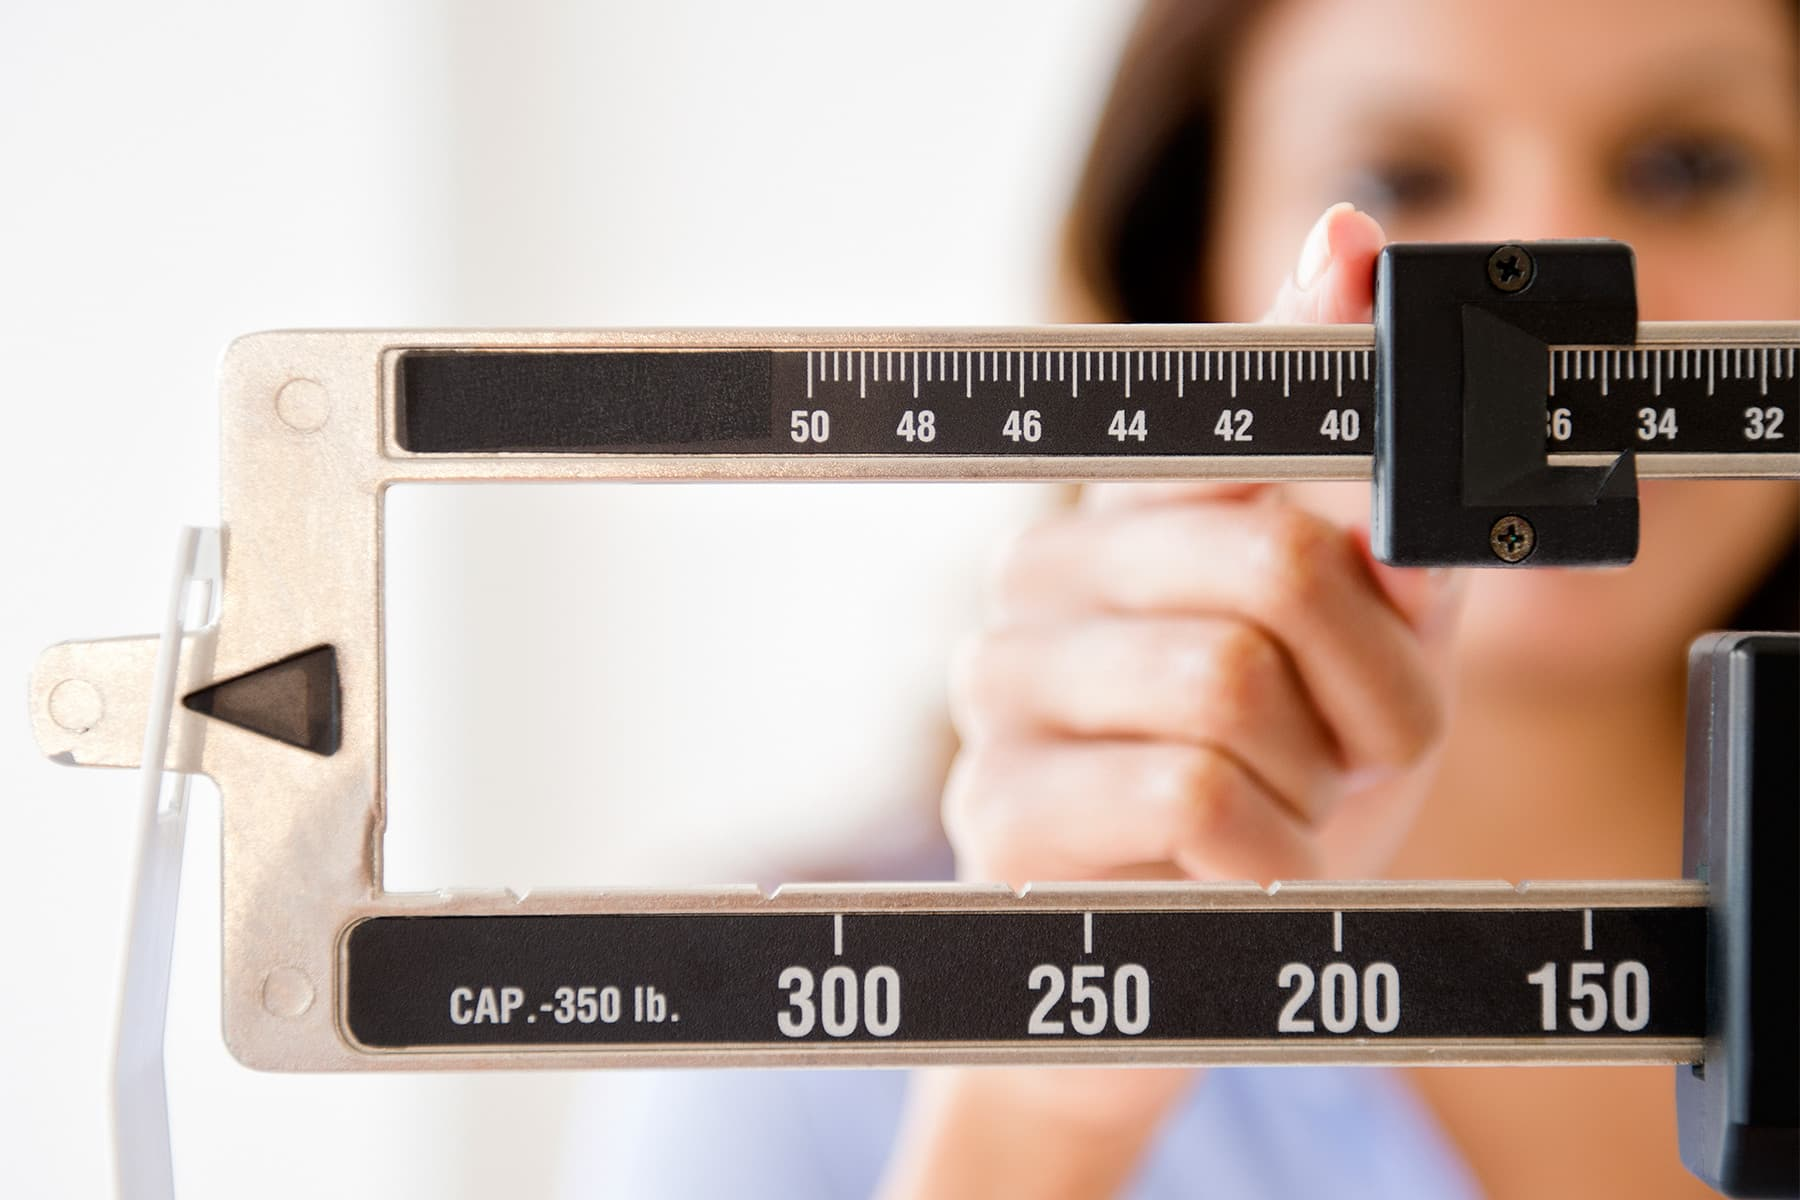 Obesity increases the chances of getting breast cancer back